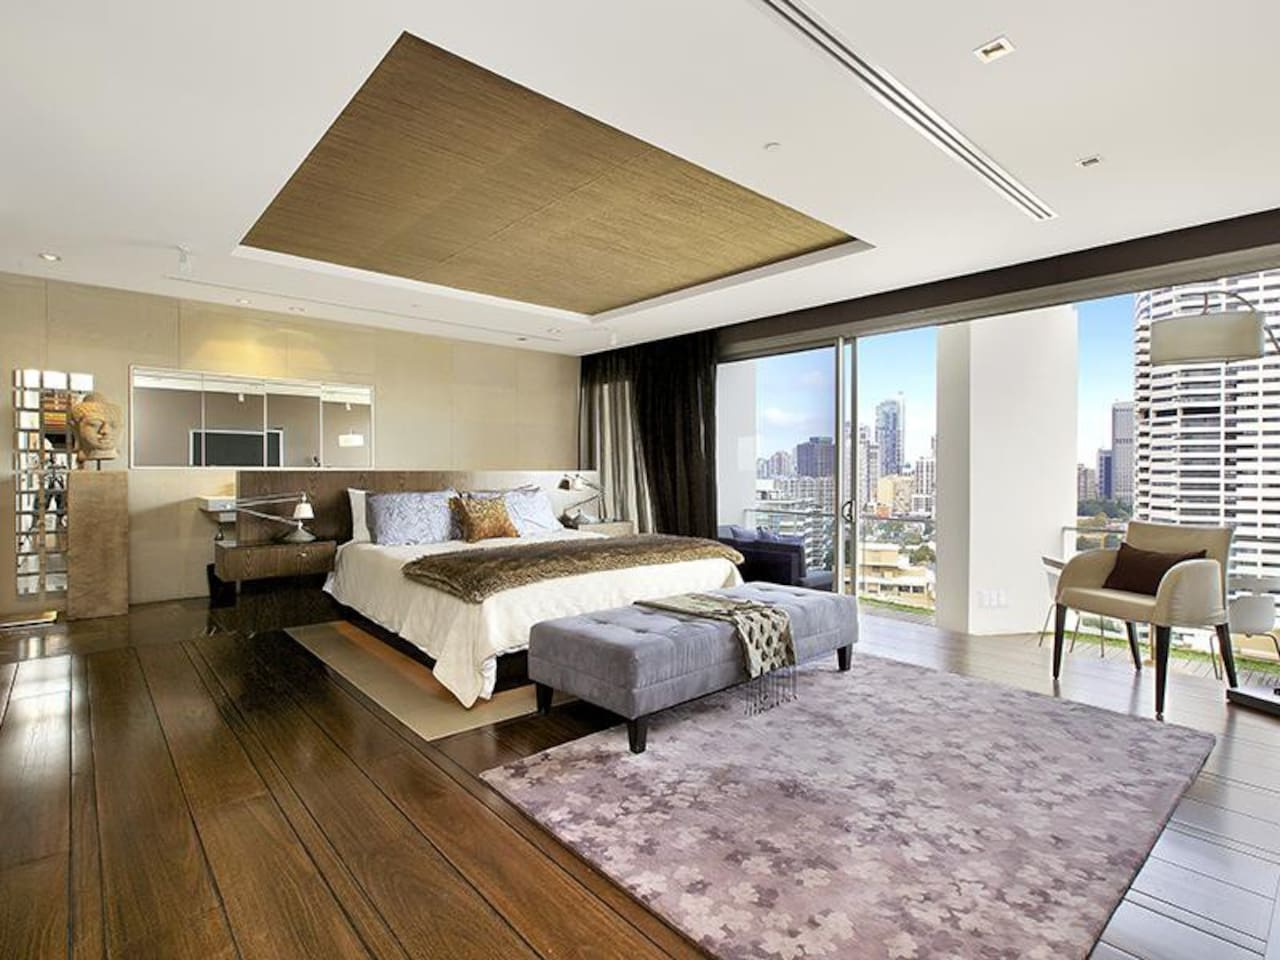 Skylofts 2 Bedroom Loft Suite Sky Loft Contemporary Hotels Apartments For Rent In